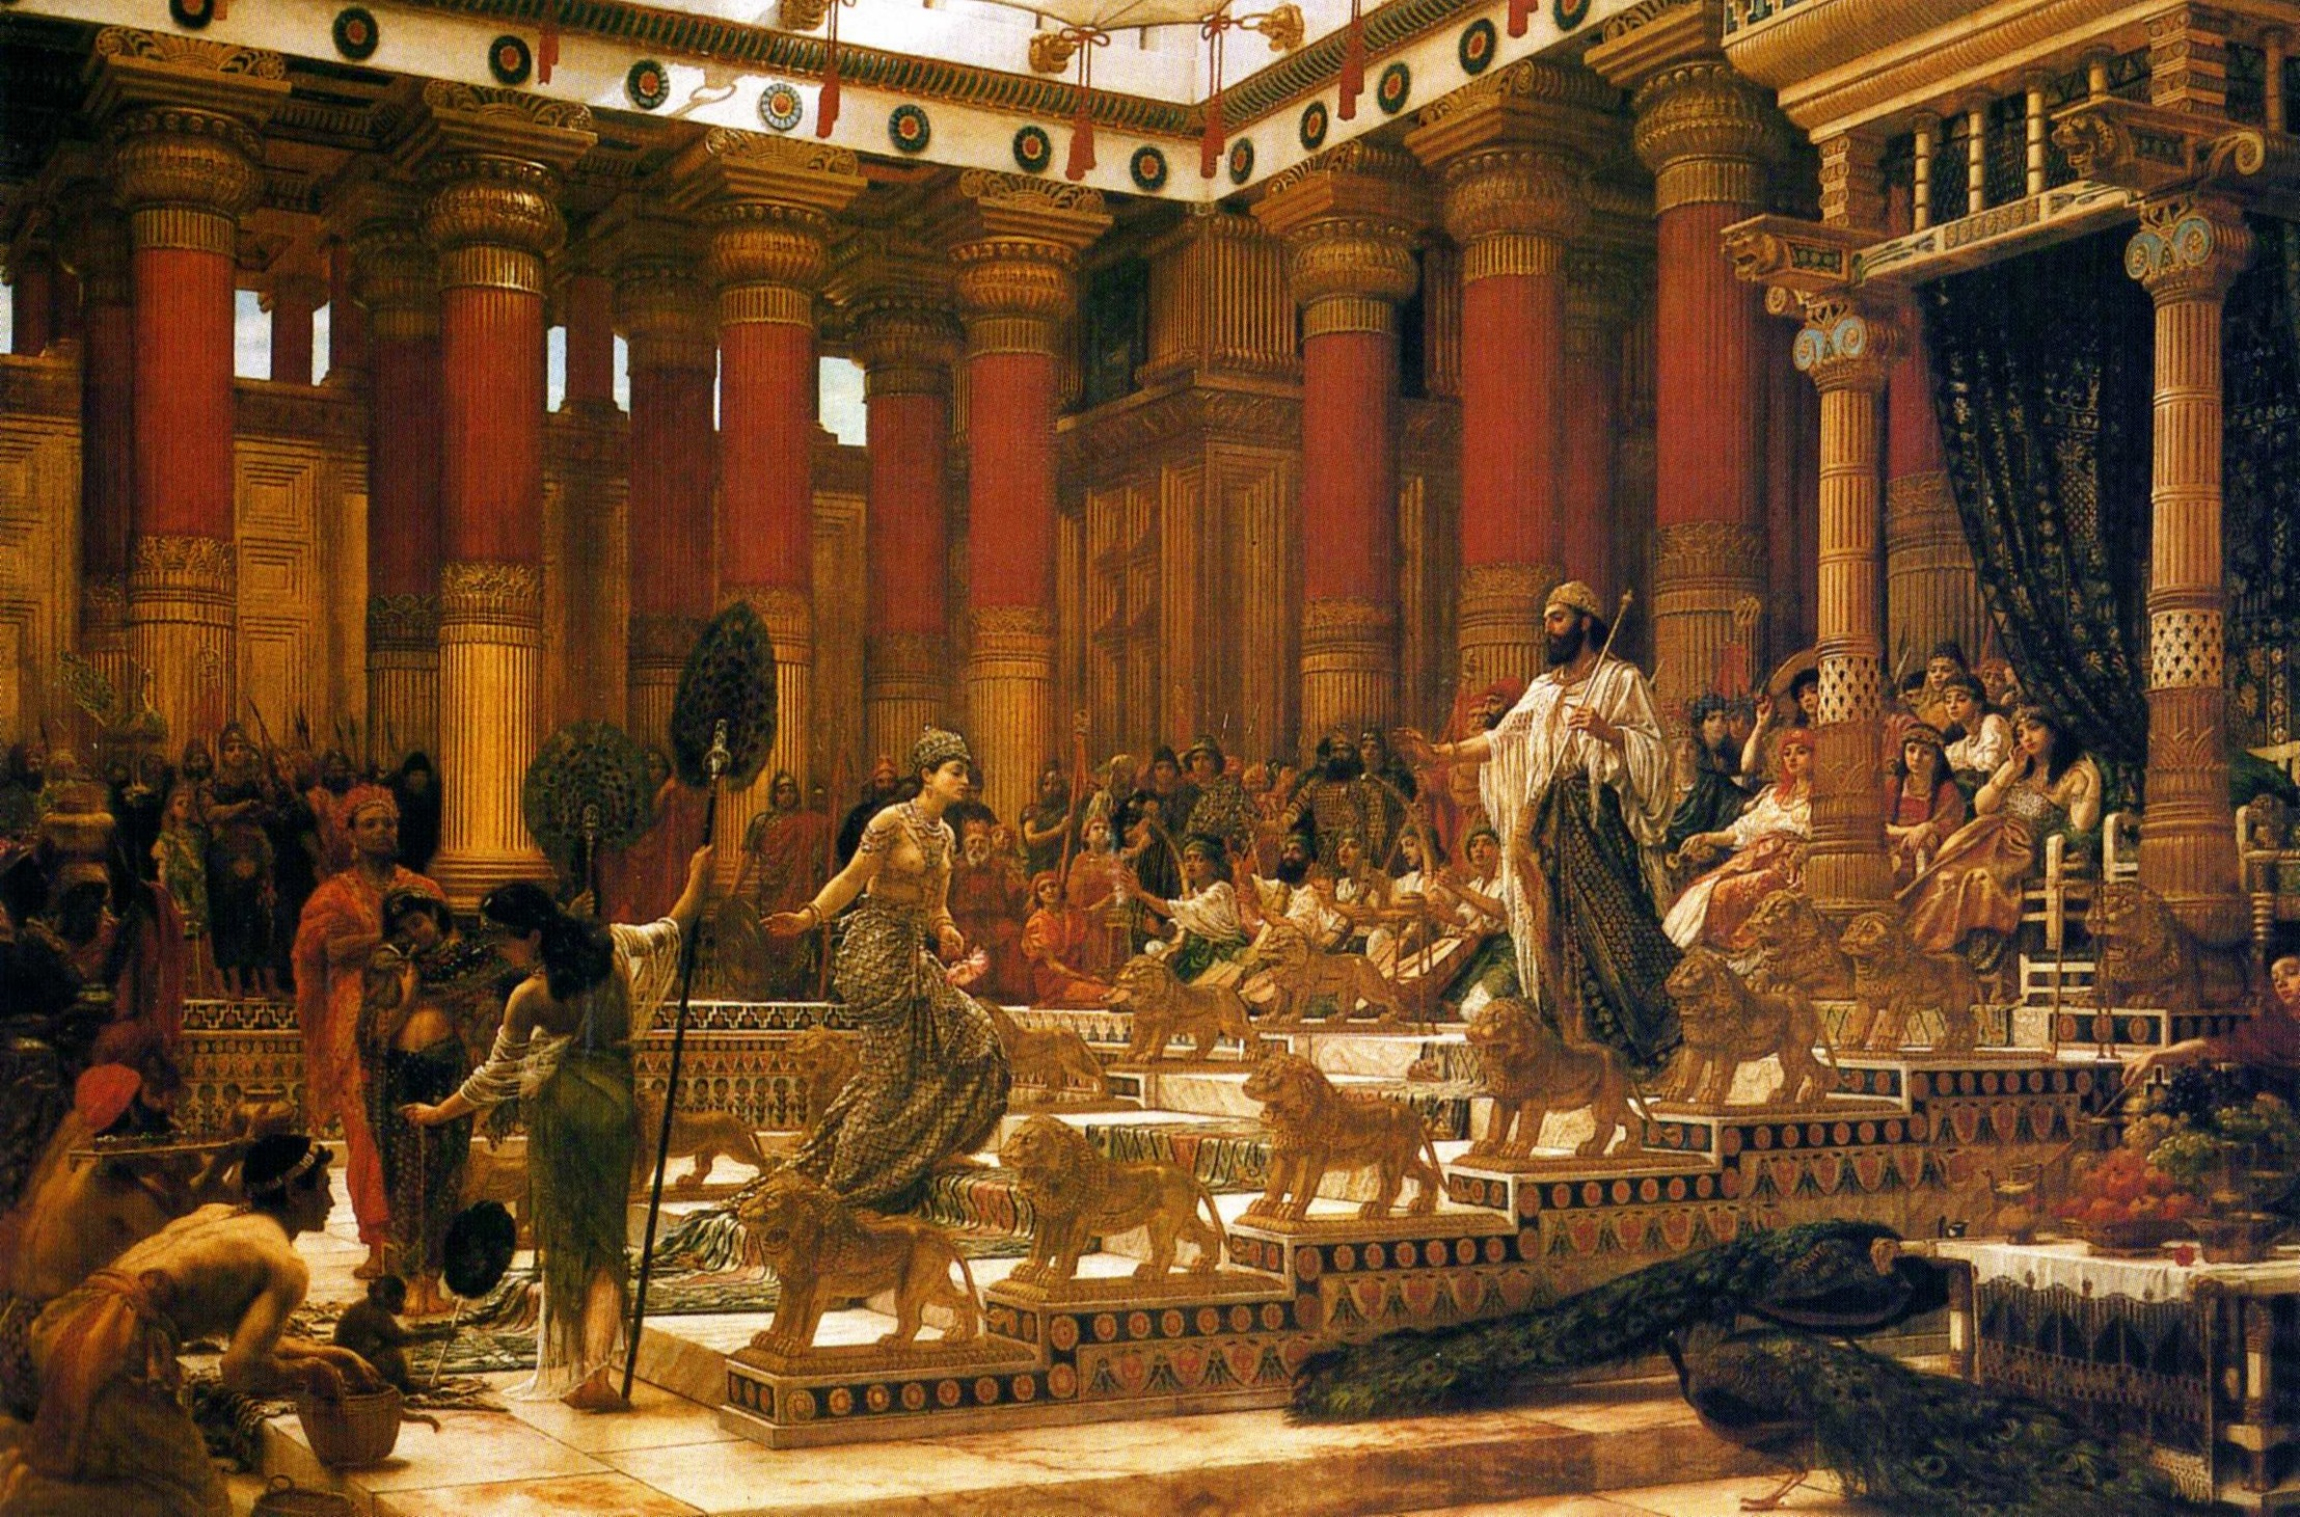 https://upload.wikimedia.org/wikipedia/commons/4/43/%27The_Visit_of_the_Queen_of_Sheba_to_King_Solomon%27%2C_oil_on_canvas_painting_by_Edward_Poynter%2C_1890%2C_Art_Gallery_of_New_South_Wales.jpg